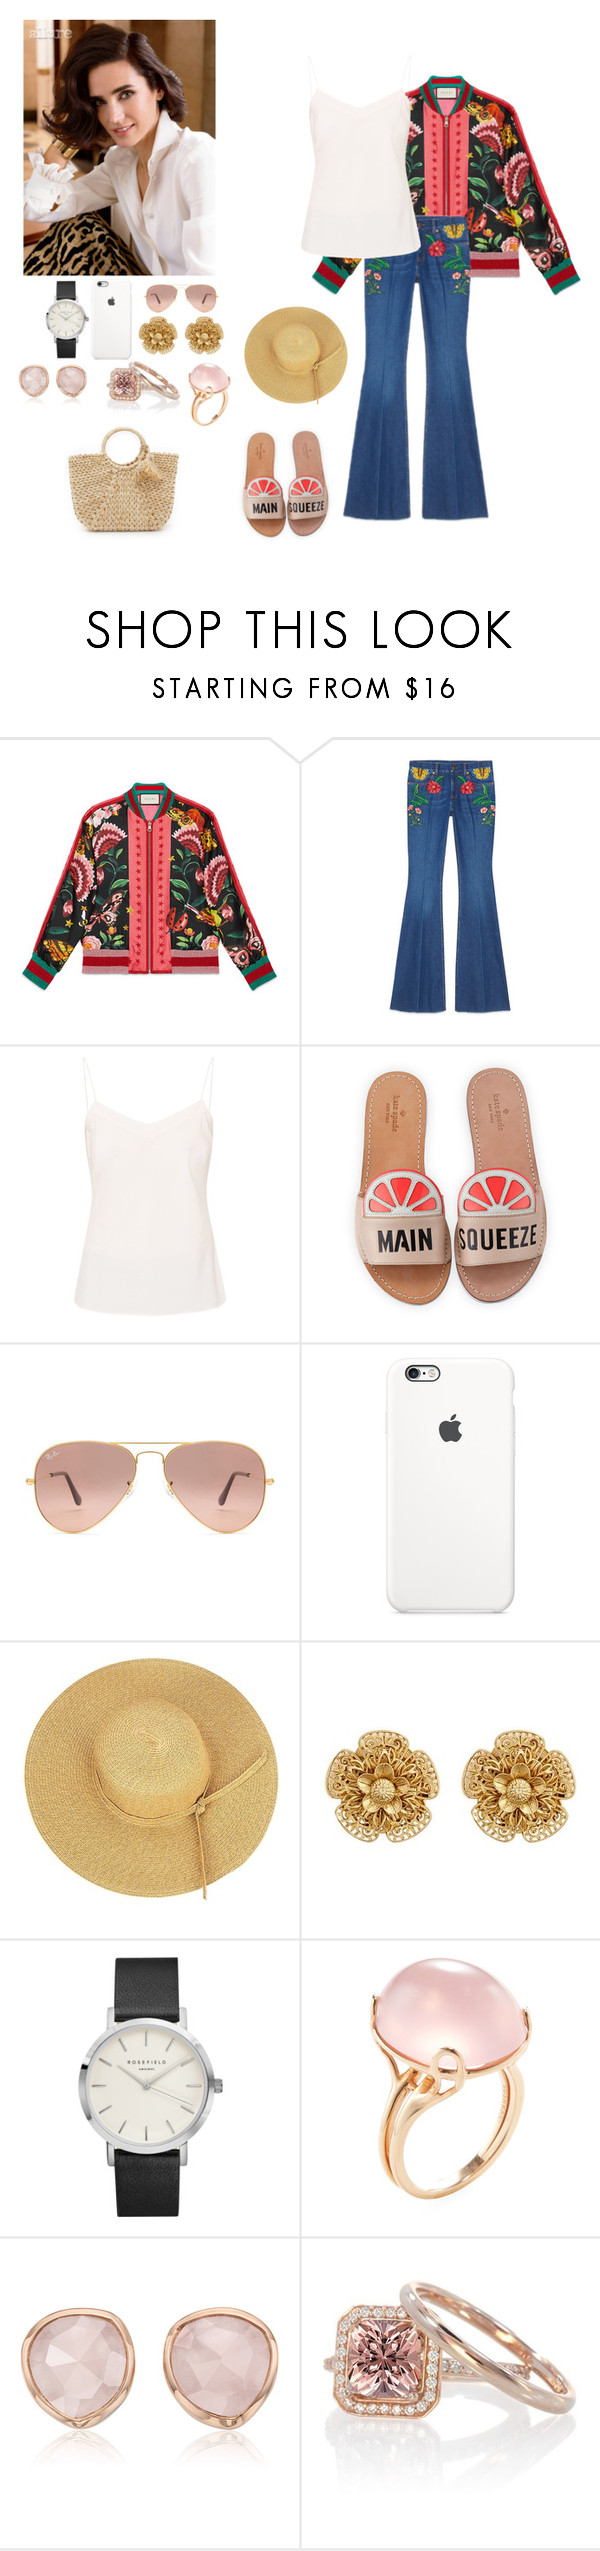 """""""before mom's  the take over"""" by lillitastic ❤ liked on Polyvore featuring Gucci, Ted Baker, Kate Spade, Ray-Ban, Miriam Haskell, Goshwara, Monica Vinader, Hat Attack and dreadfullysilent"""